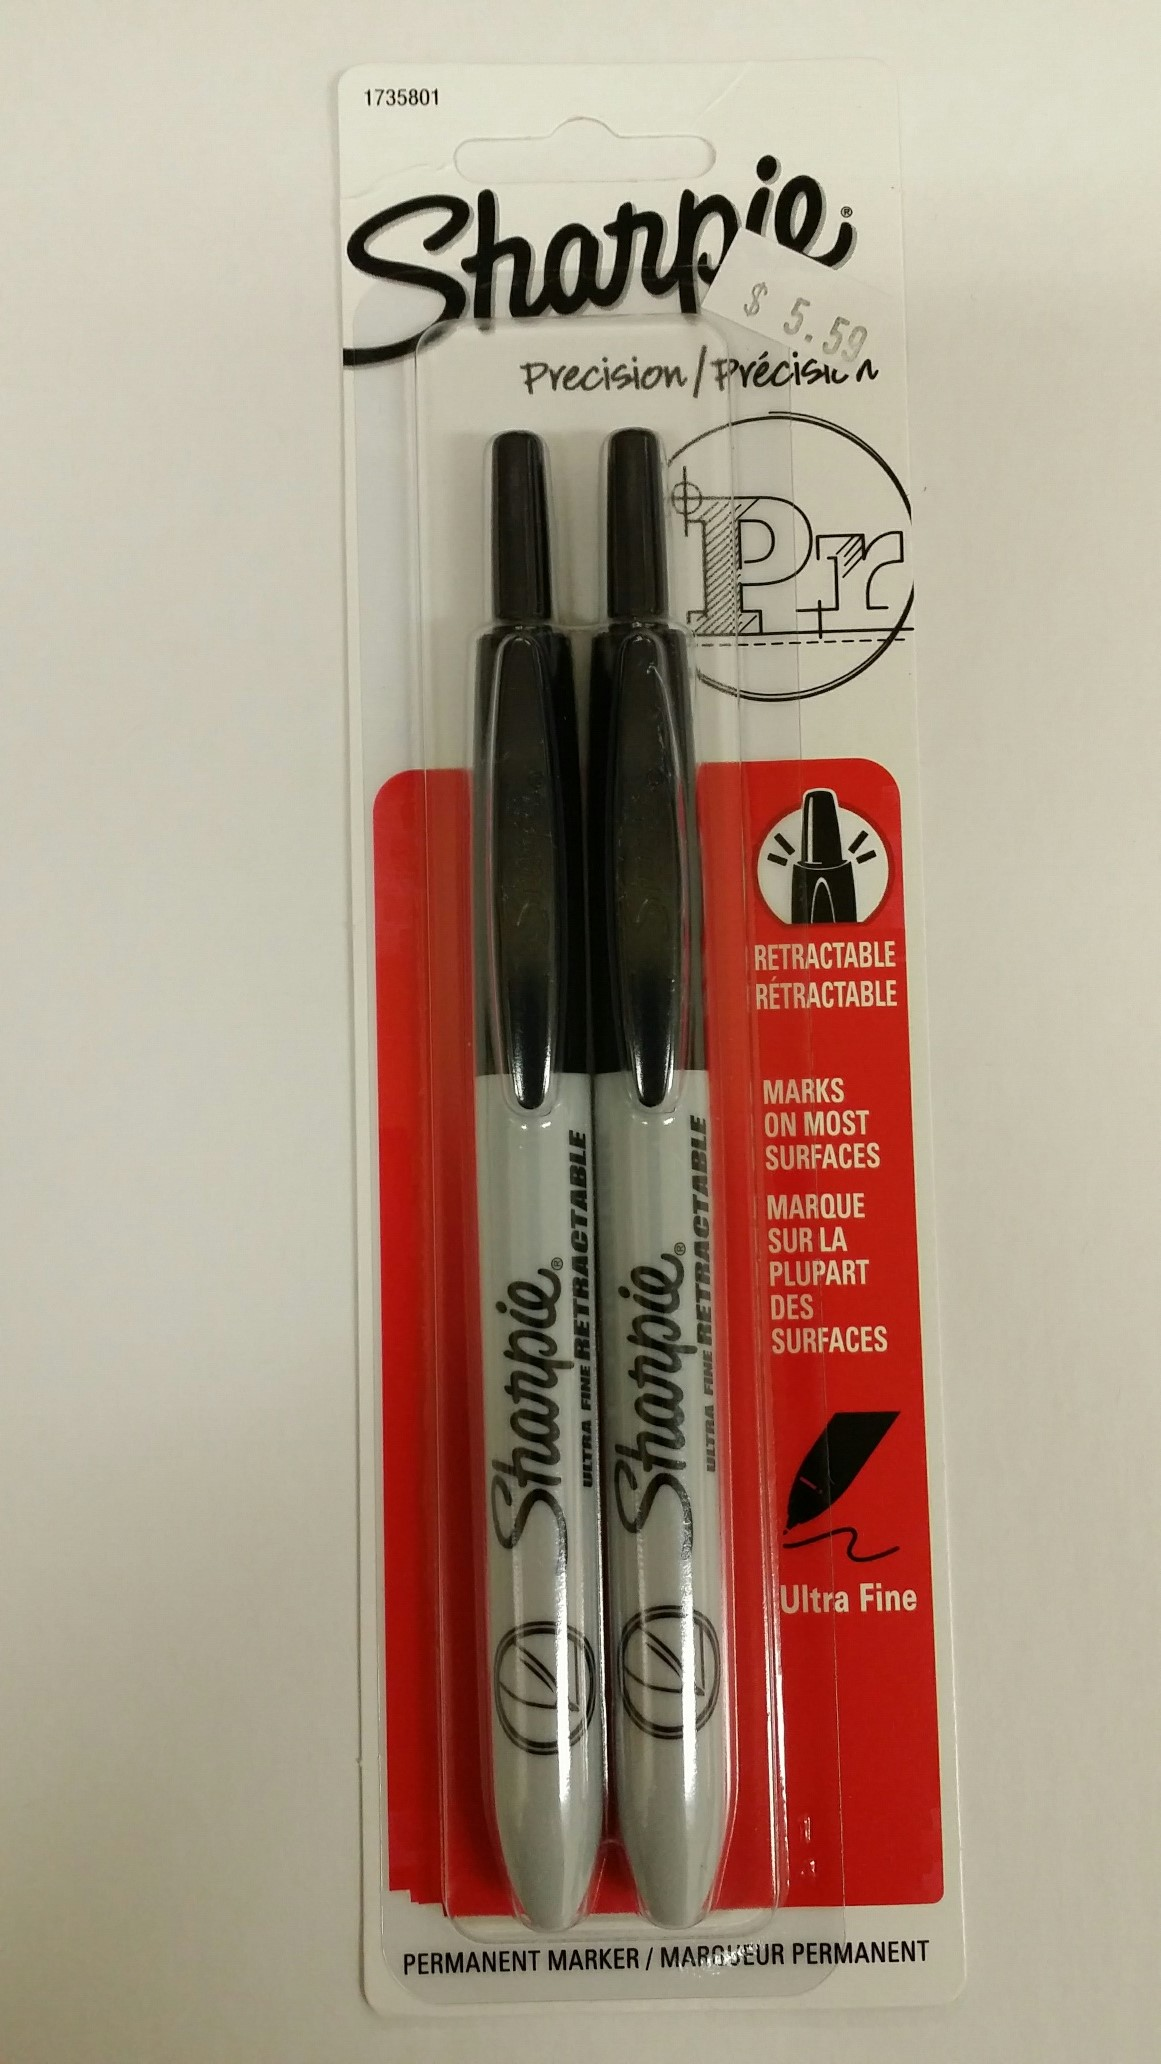 SHARPIE RT-UF 2PK/BLACK